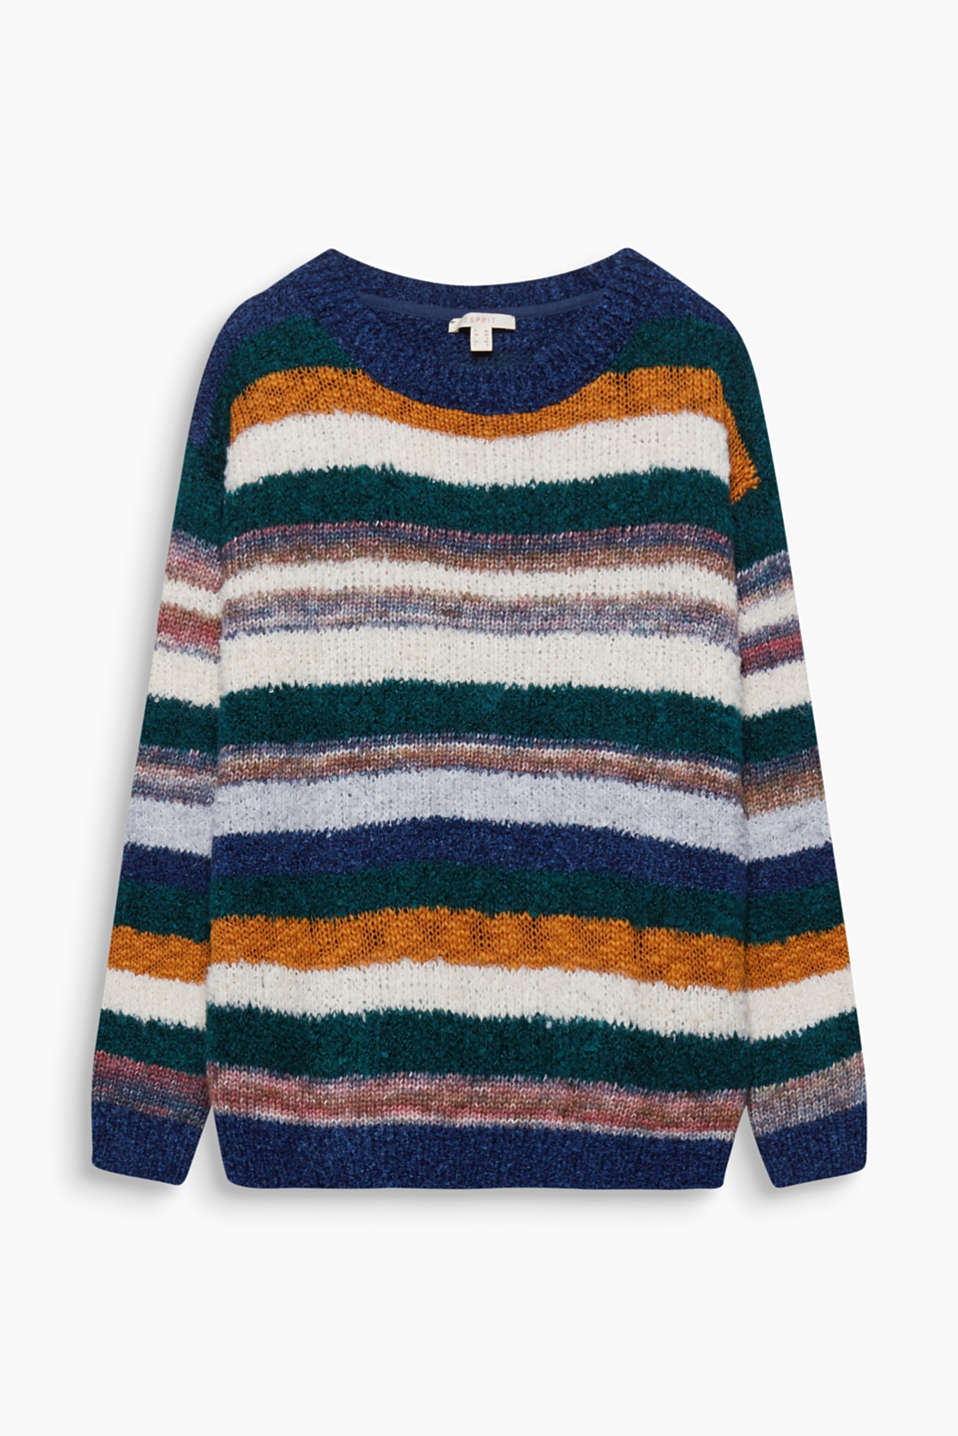 Colourful stripes are combined with various fancy yarns to give this jumper its amazing trendy look!